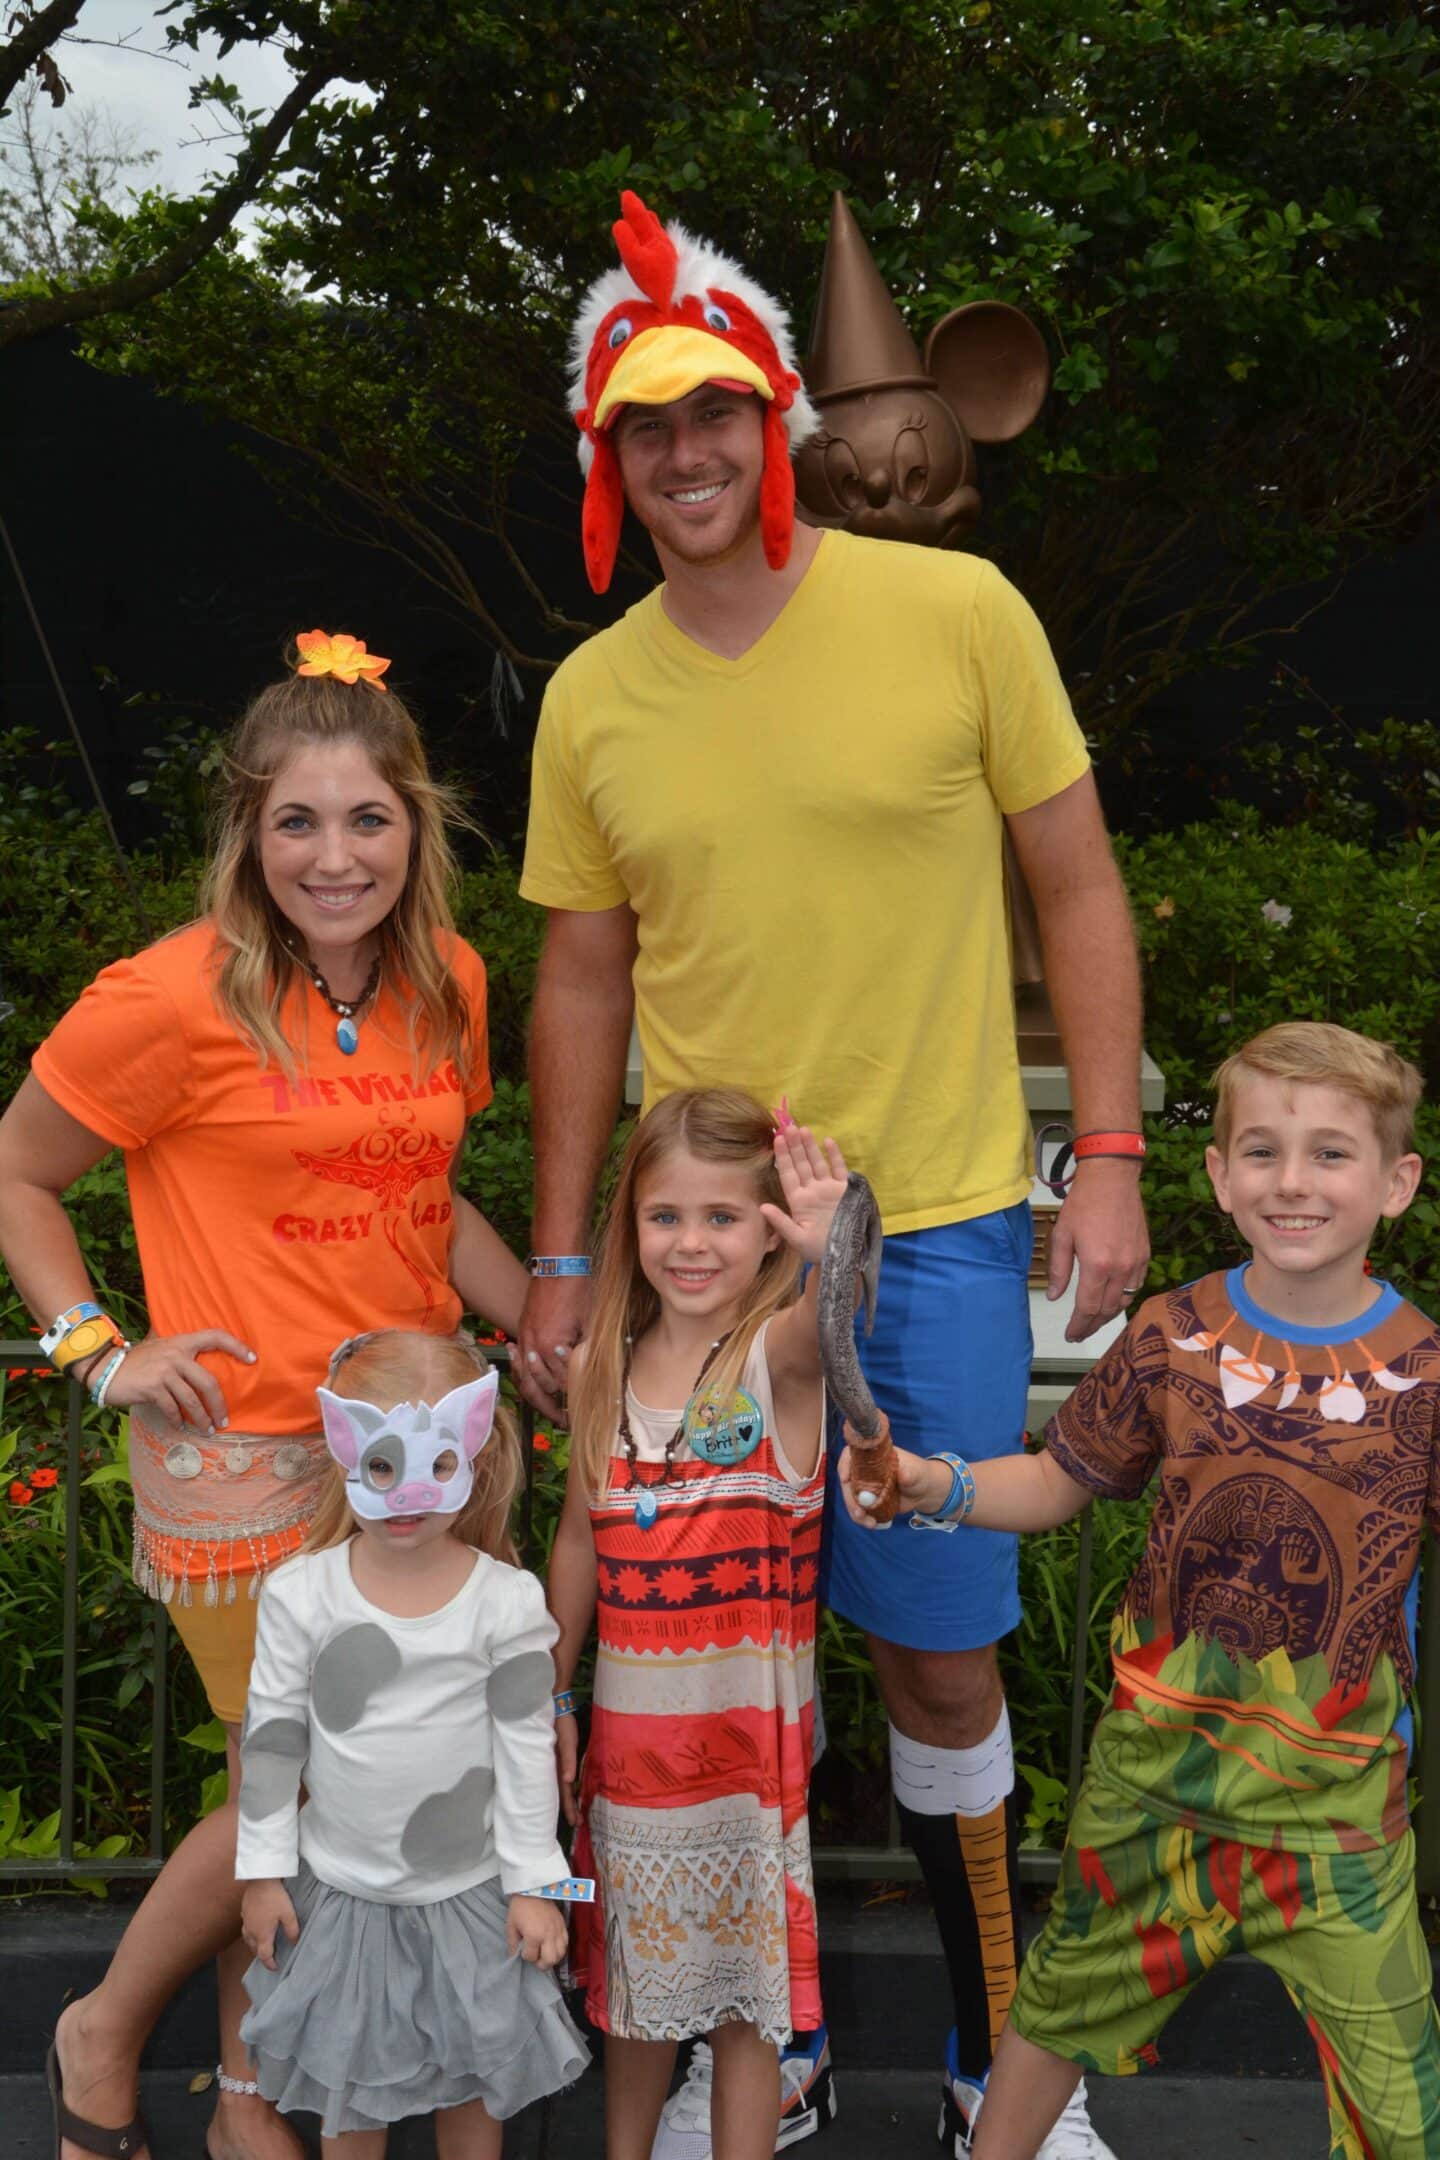 Moana Family Costumes: Themed Costumes for Halloween!